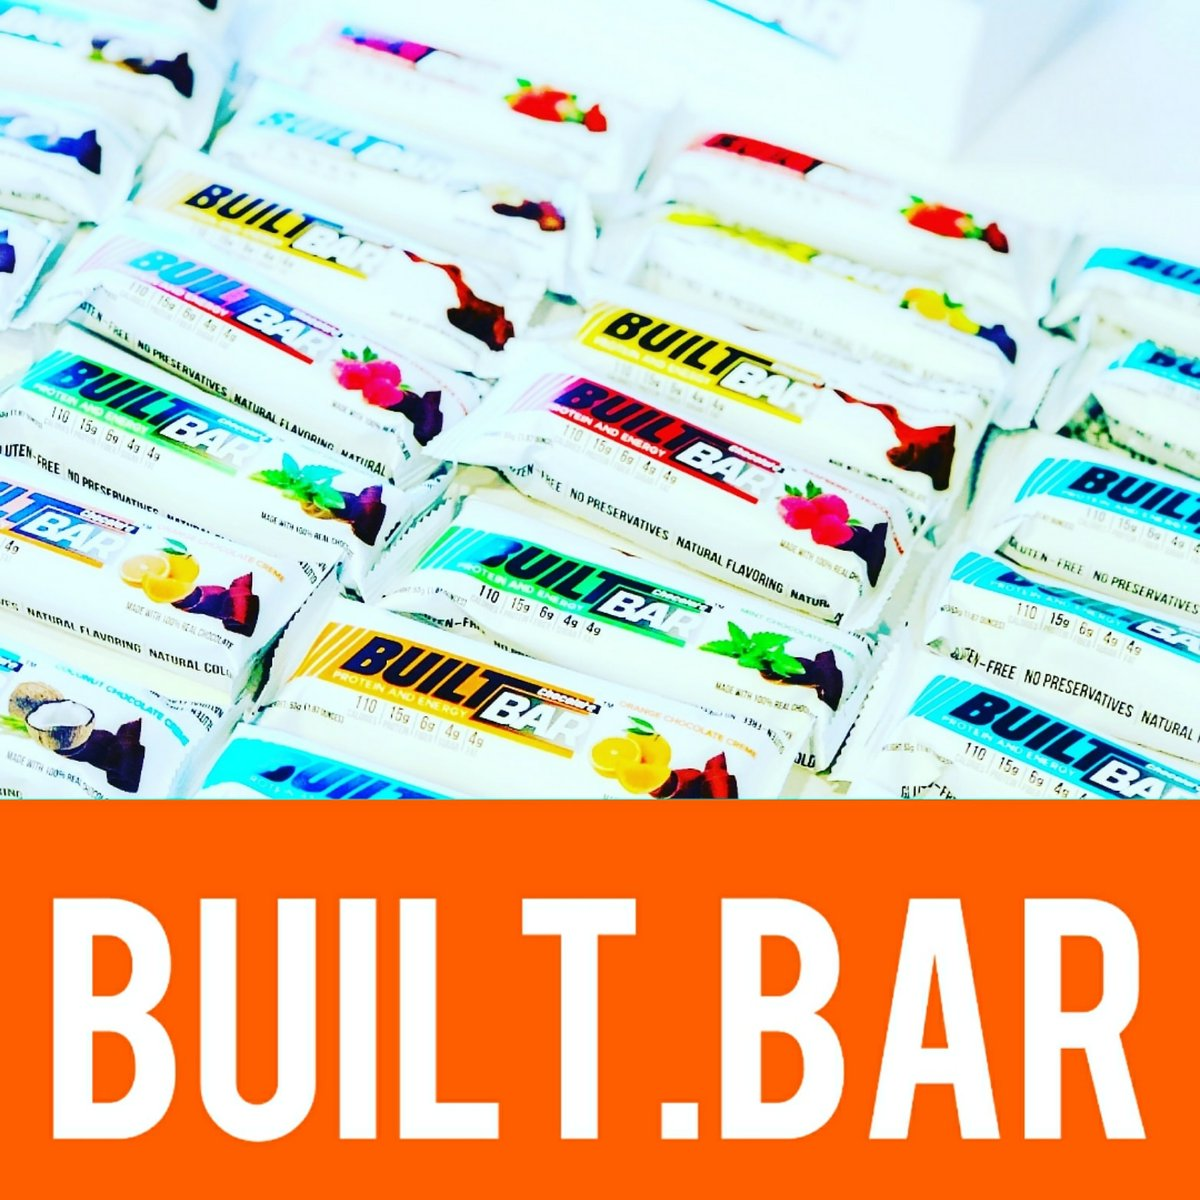 👉👉     Best protein bar in the world 💪  #builtbar #proteinbar #bar #protein #healthy #fit #fitness #weightloss #diet #keto #ketodiet #ketogenic #glutenfree #energy #proteinbars #diets #gym #nutrition #bodybuilding #running  #runner #HealthyLife #proteins